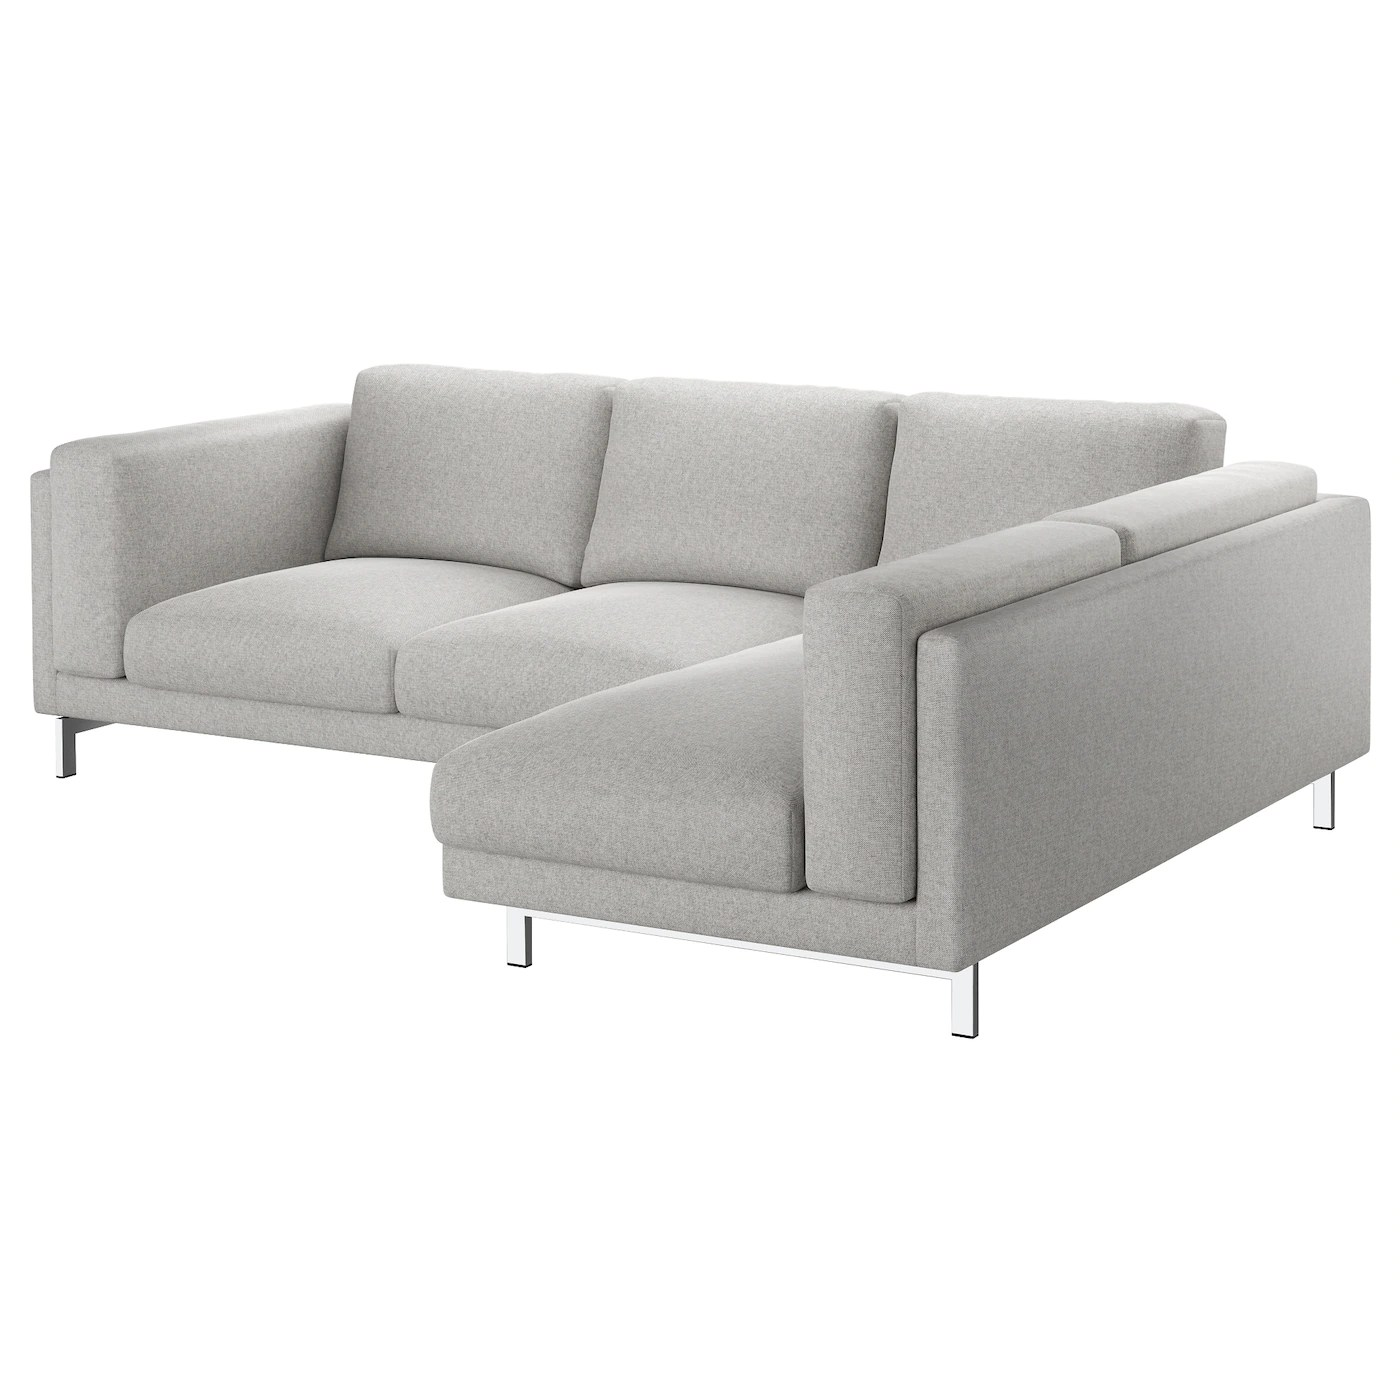 Ikea Sofa Nockeby Test Nockeby Two Seat Sofa W Chaise Longue Right Tallmyra White